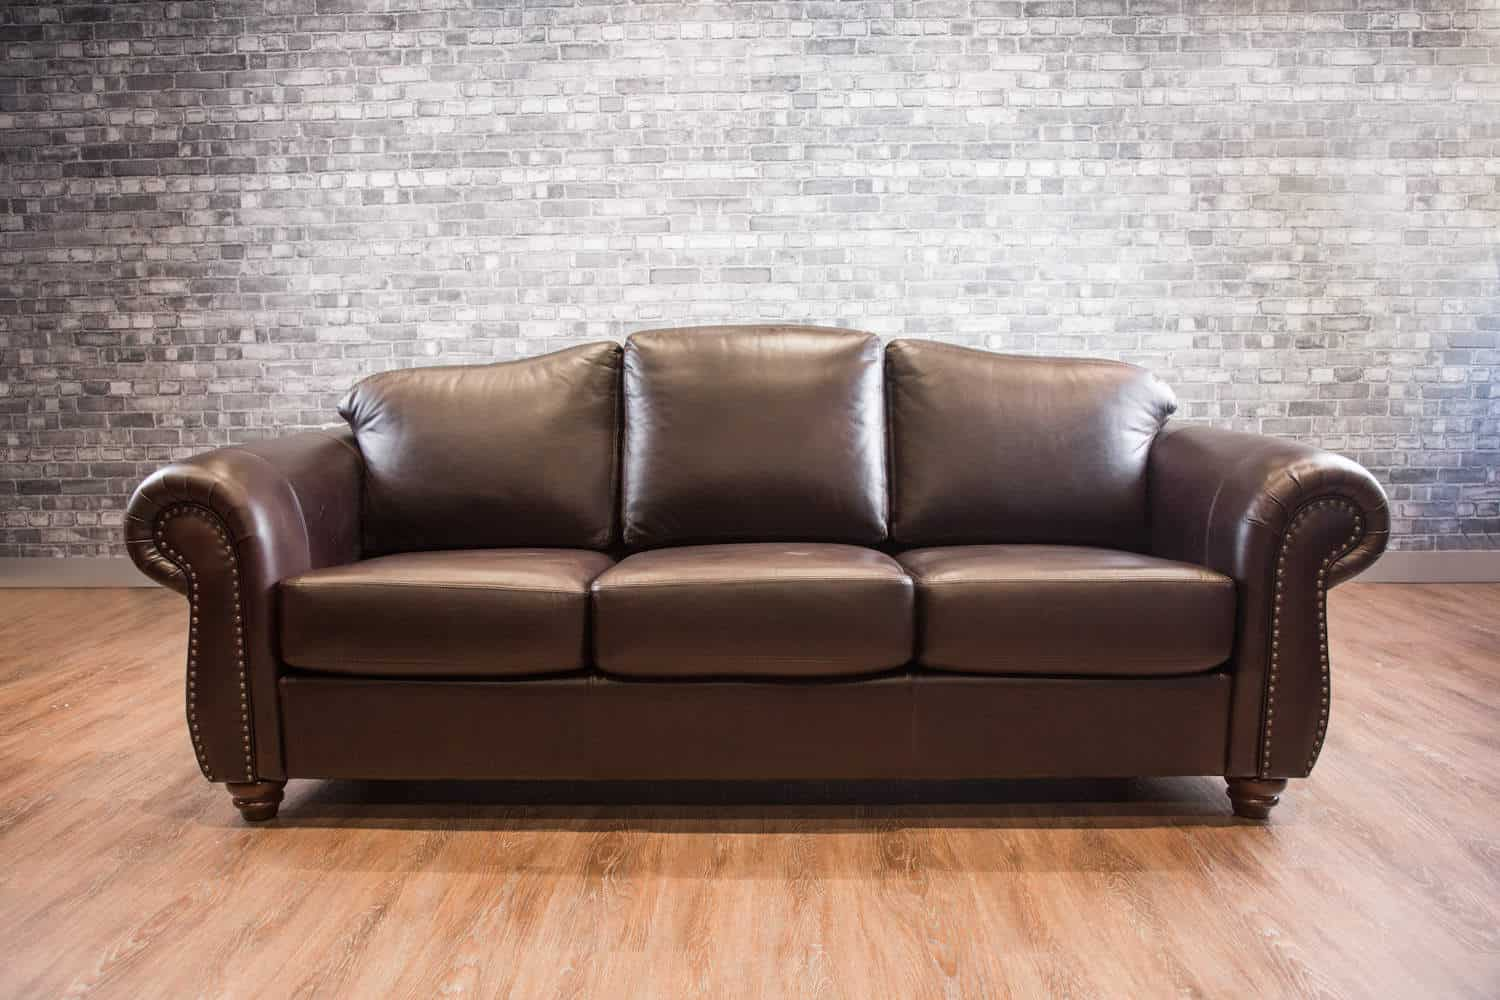 The utah leather sofa canada 39 s boss leather sofas and for Traditional leather sofas furniture